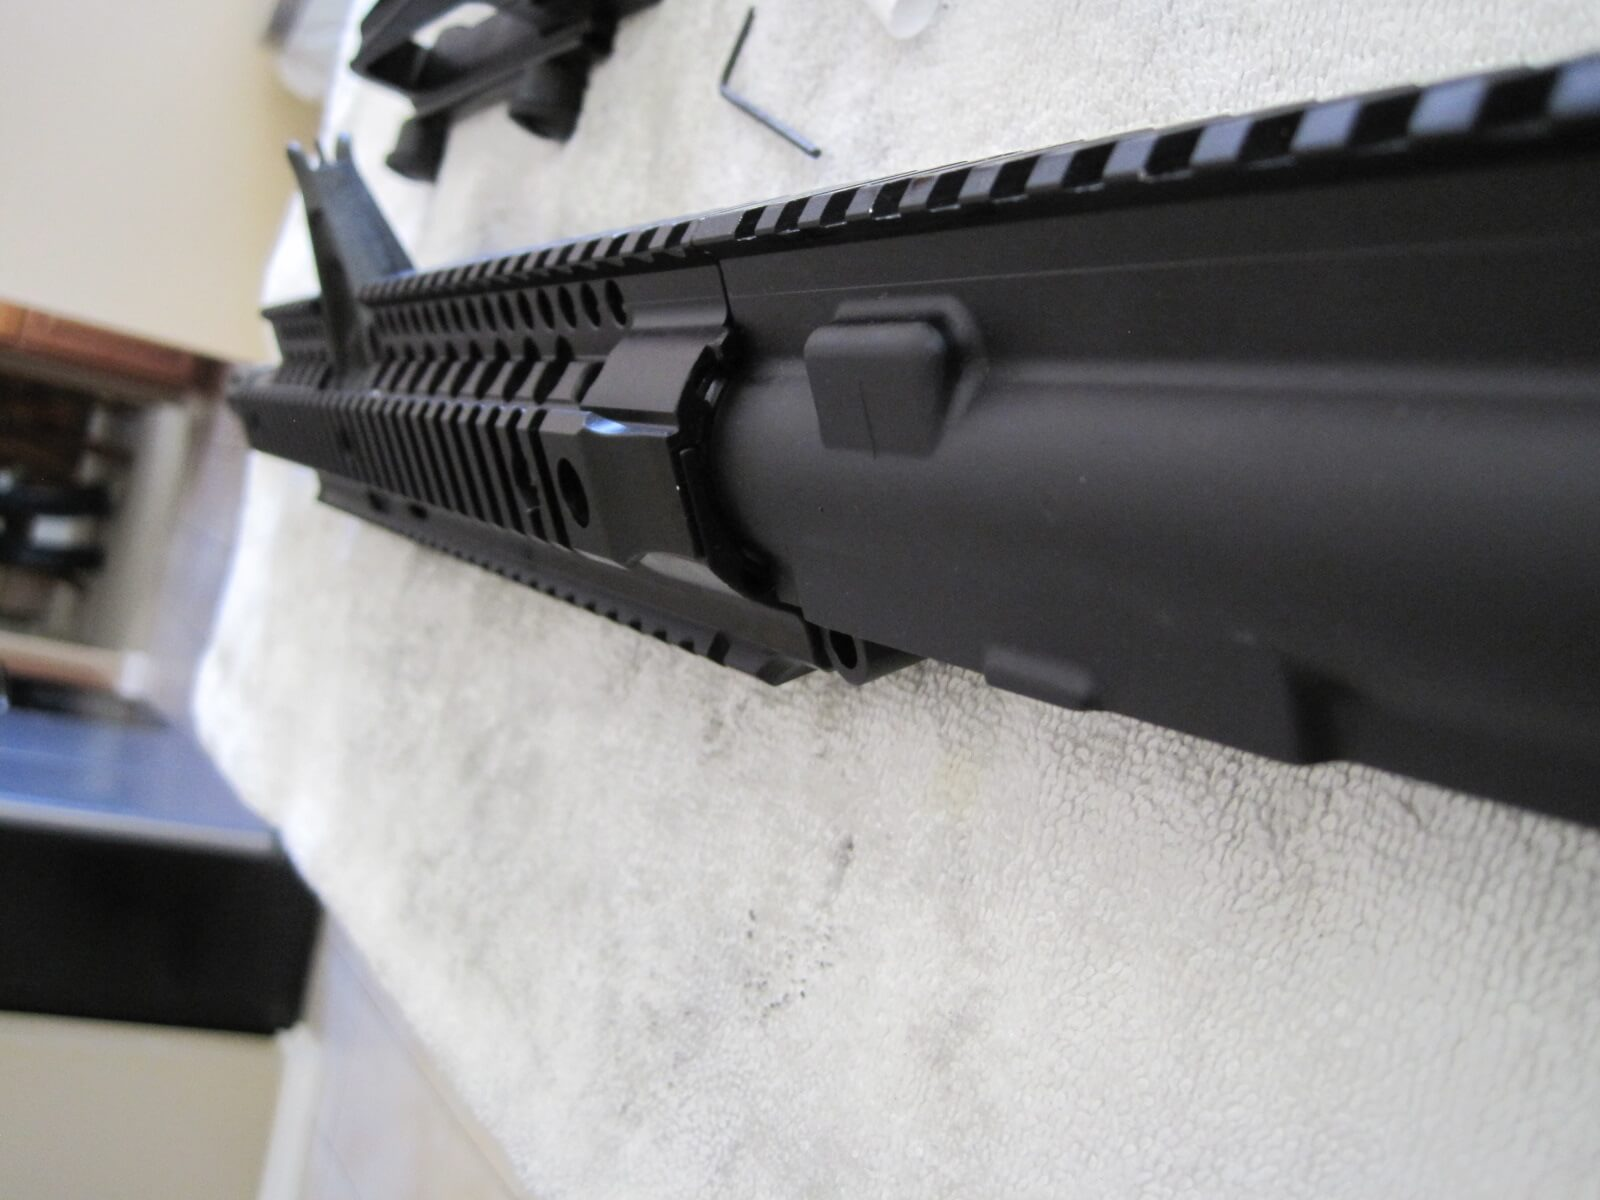 Check alignment of receiver and Daniel Defense Omega X FSP Rail